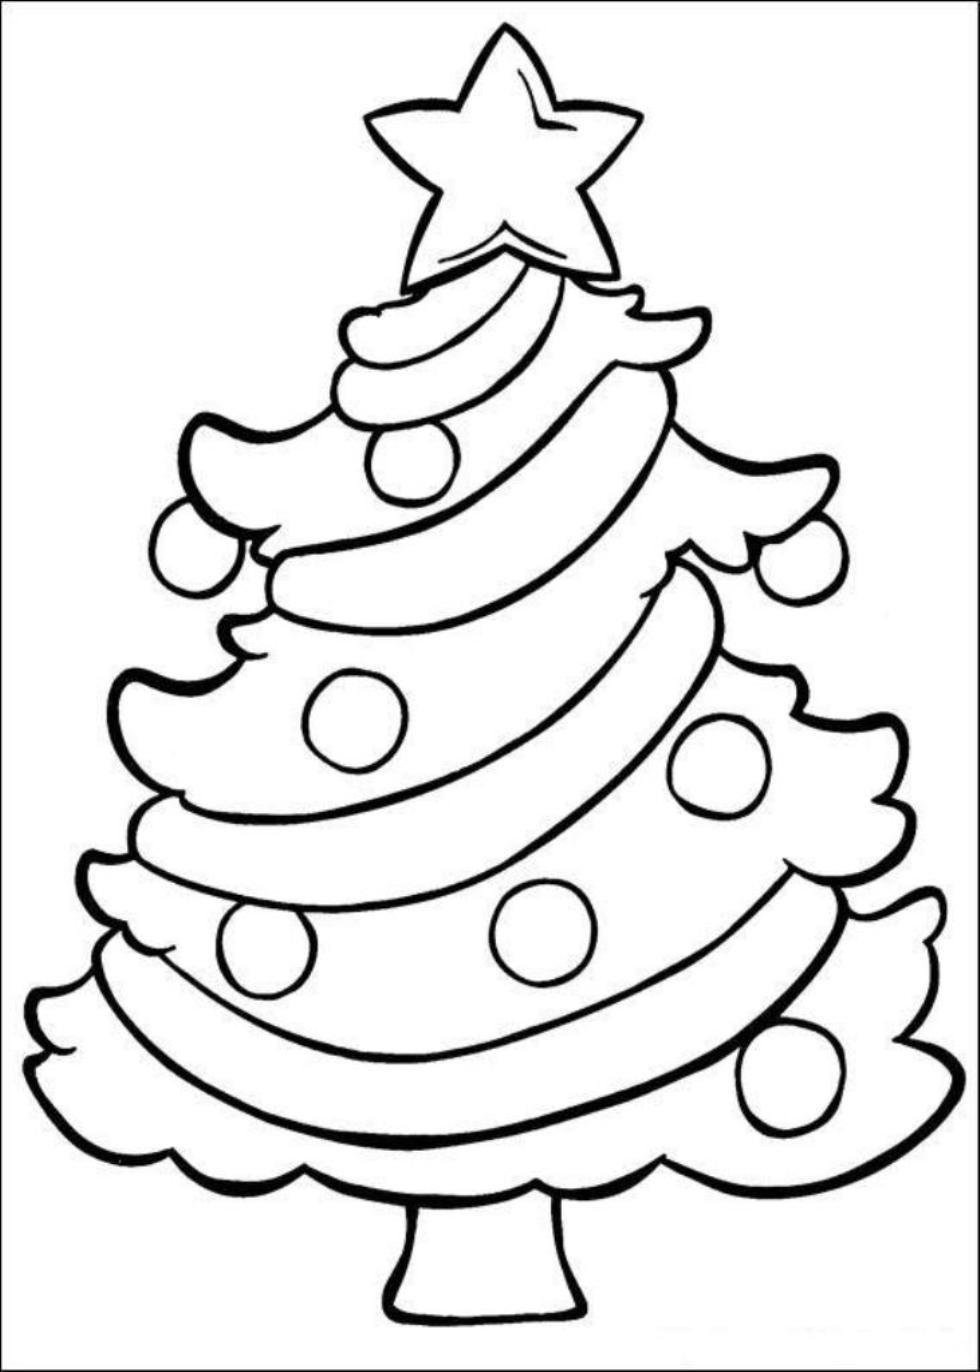 coloring pages to print out for christmas disney christmas coloring pages disney cartoon xmas pages for out print coloring to christmas